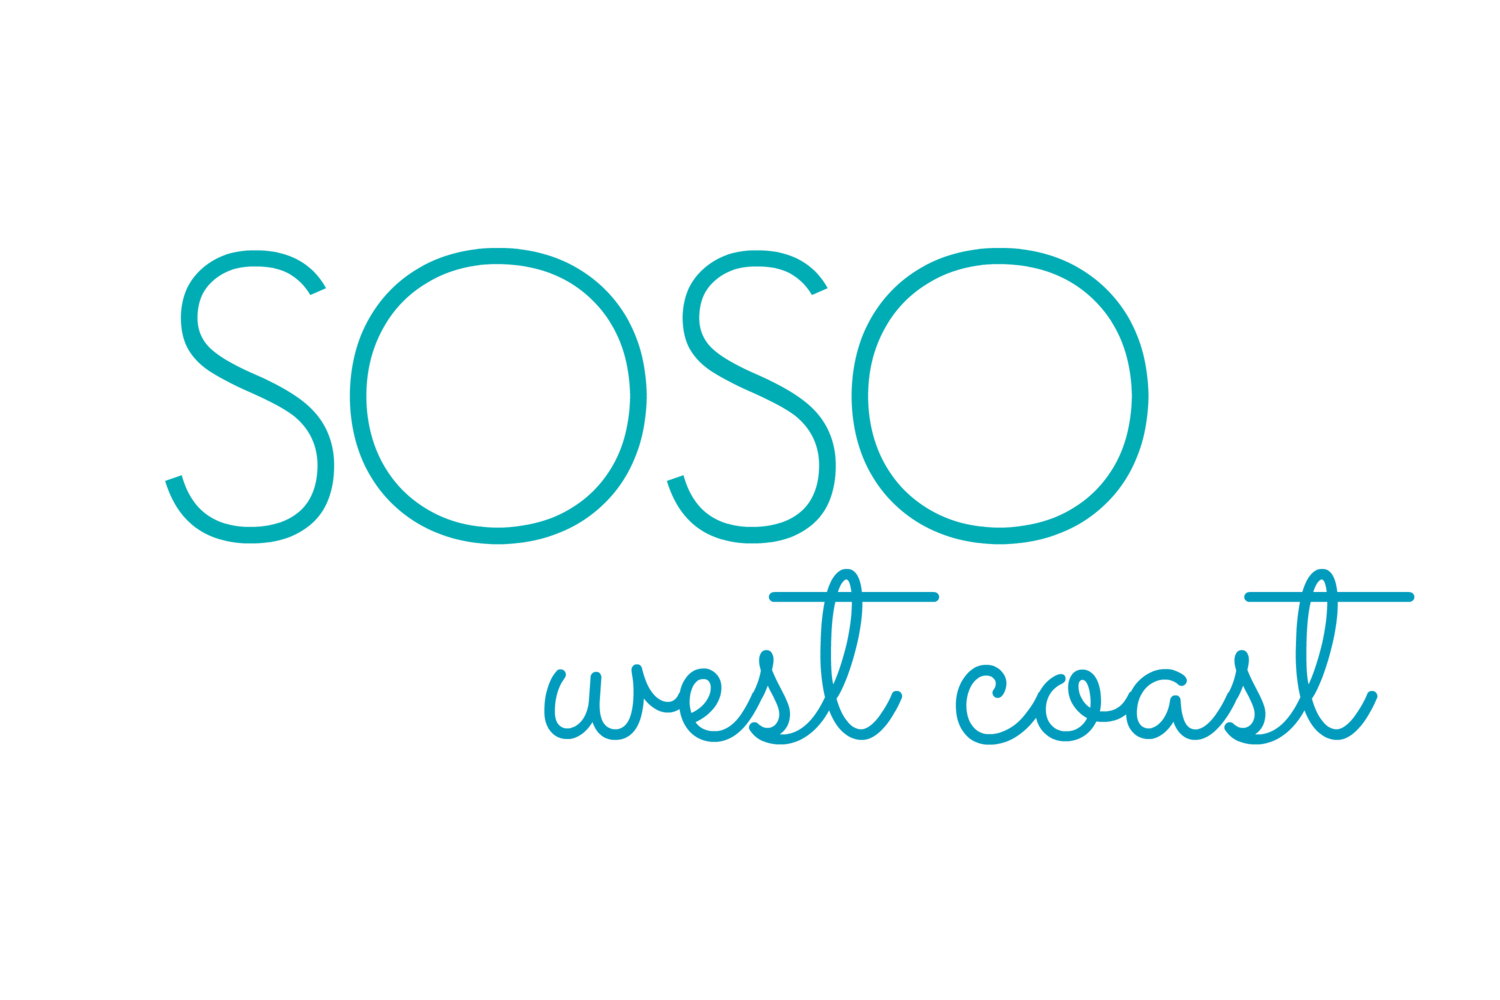 soso west coast